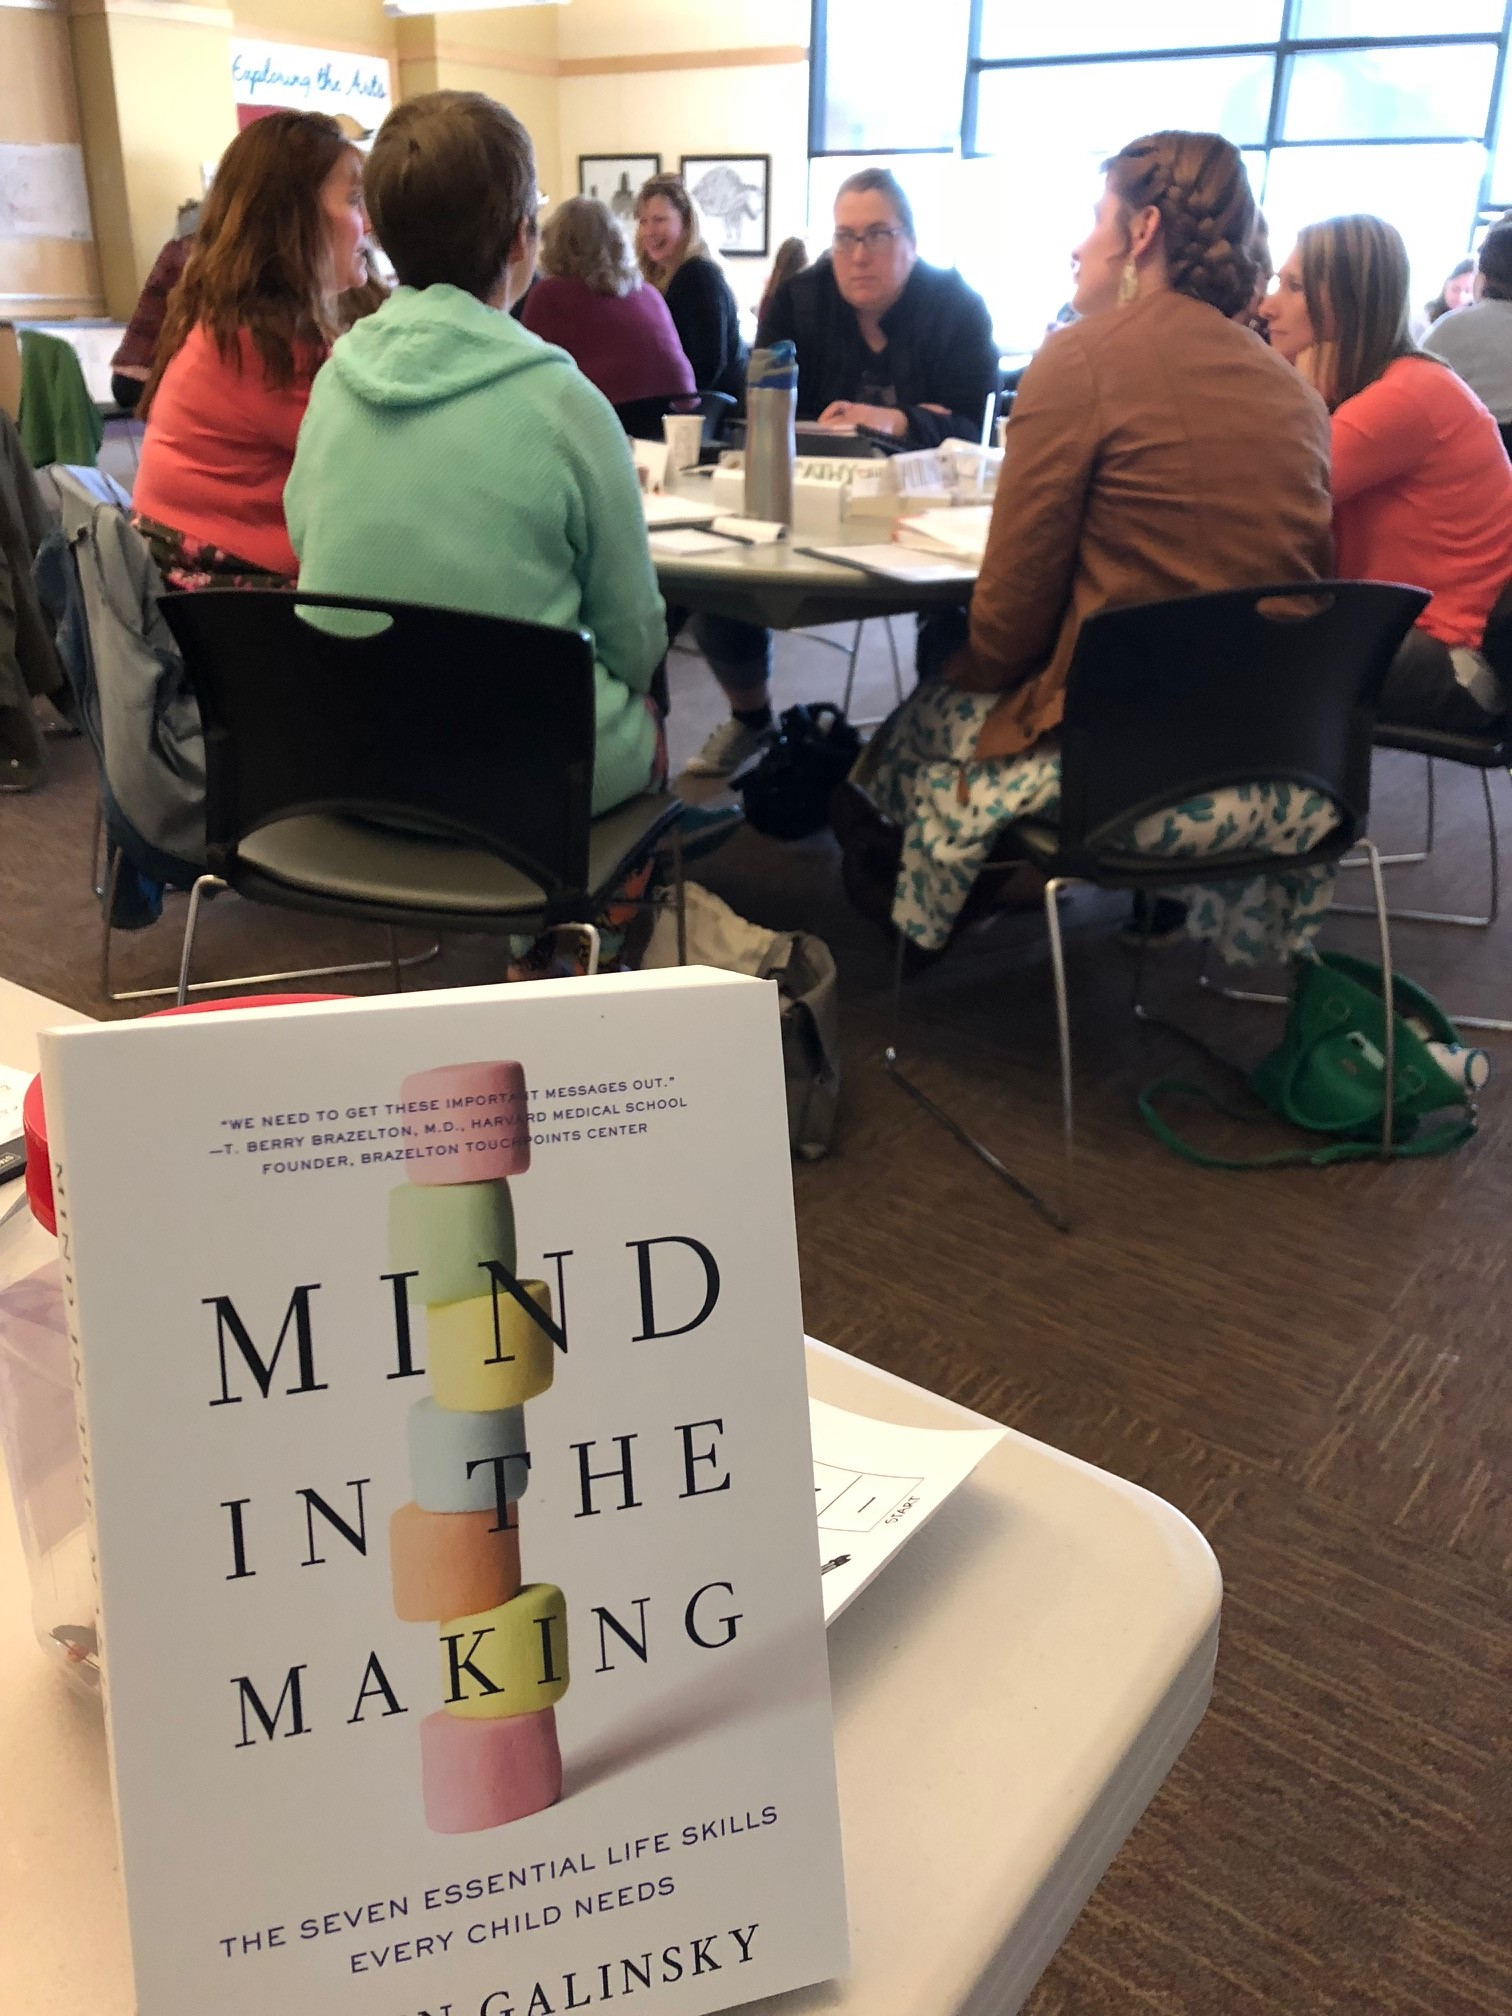 Mind in the Making Book with attendees hard at work learning in the background.